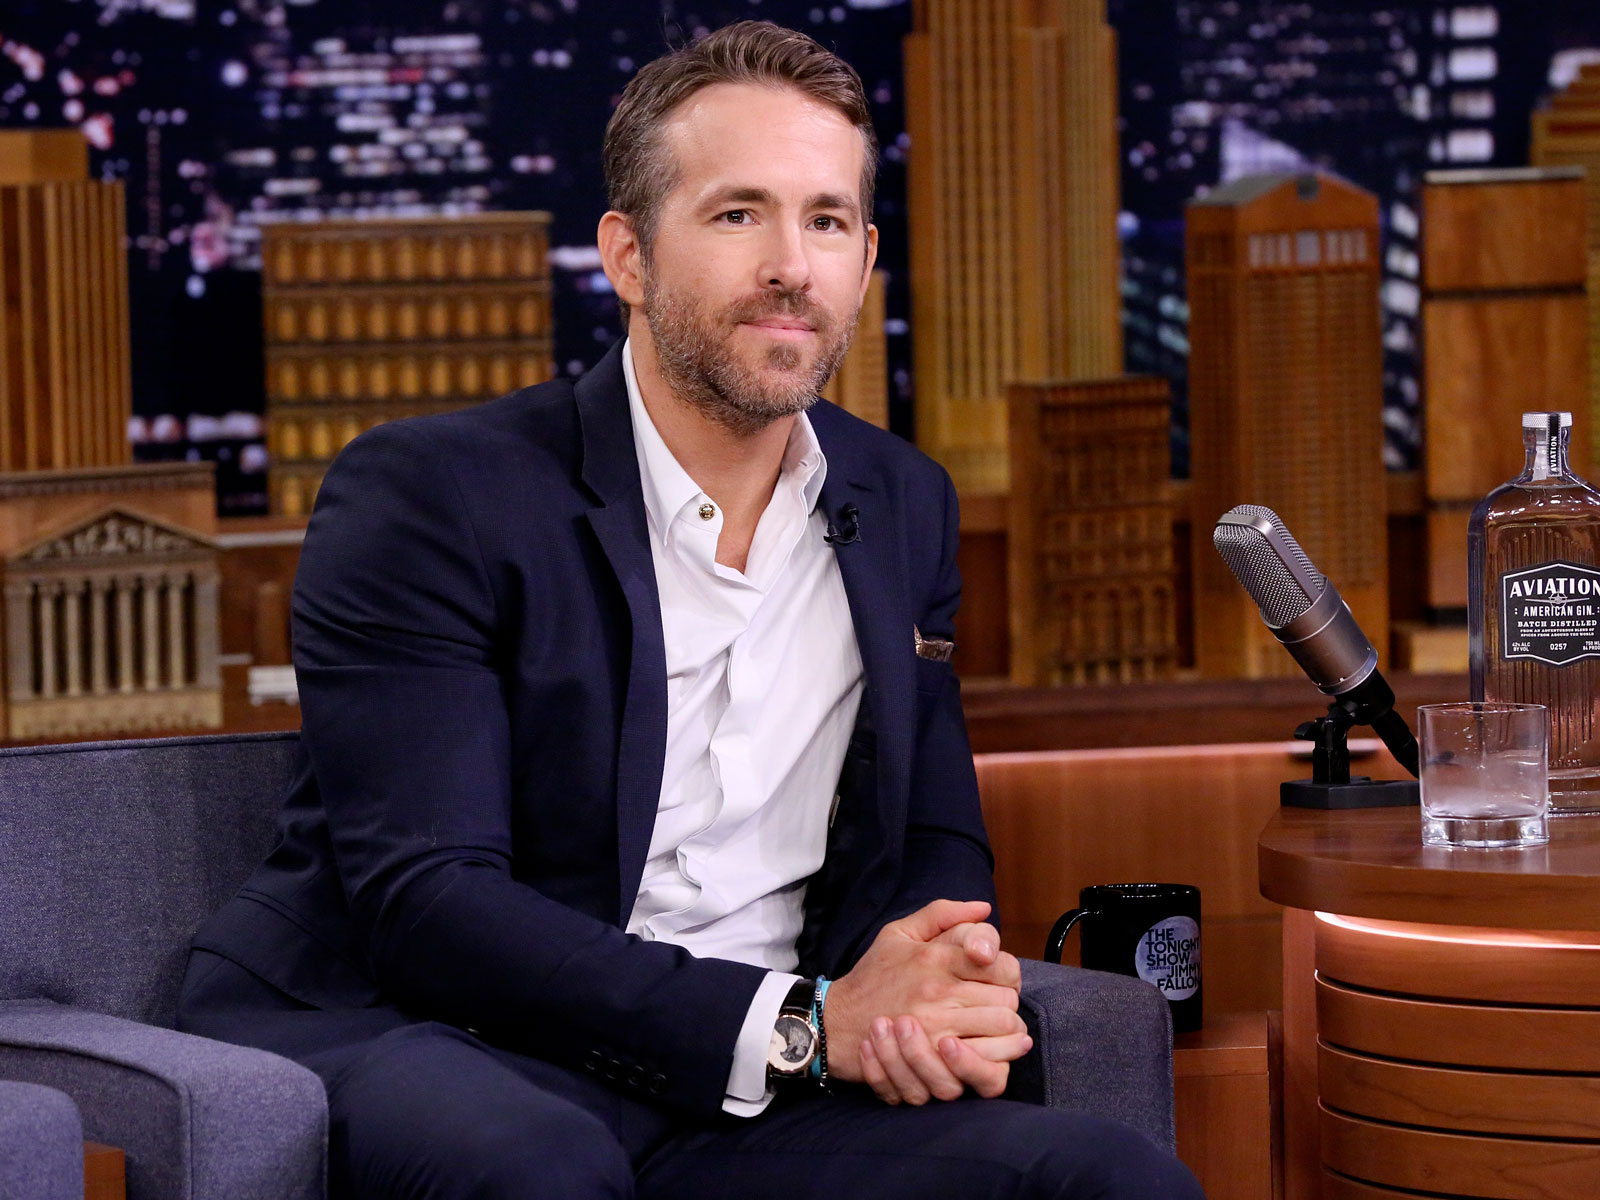 Gin Distillery Owner Ryan Reynolds Takes His 'Out of Office' Emails (Somewhat) Seriously